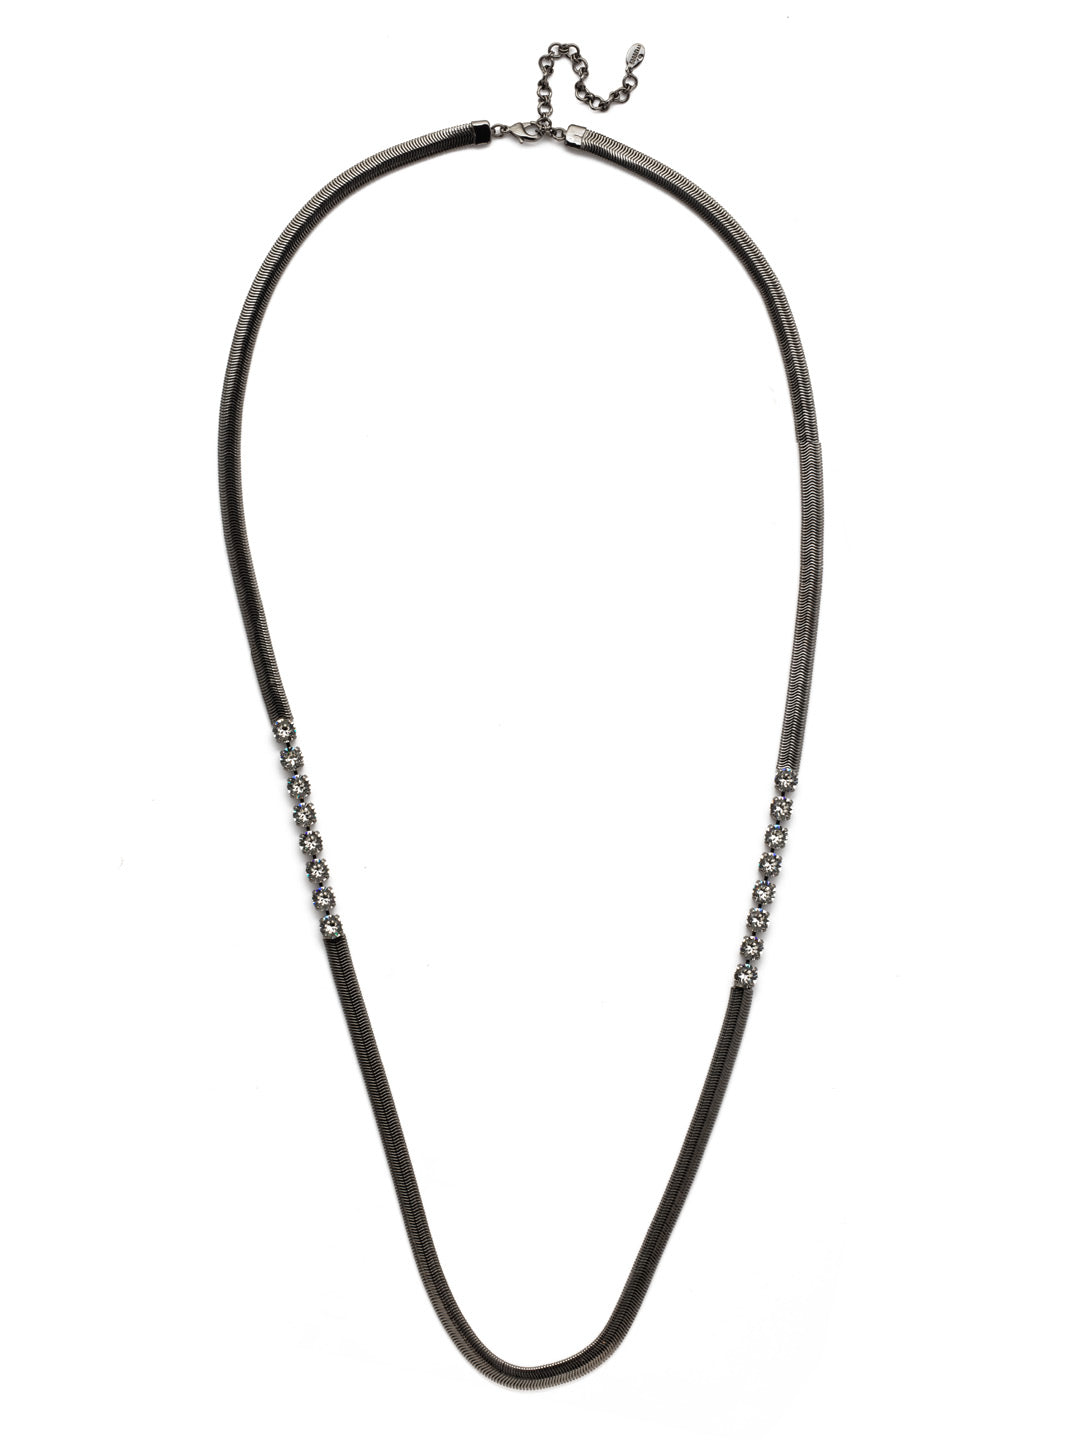 Aesha Long Necklace - 4NEP5GMCRY